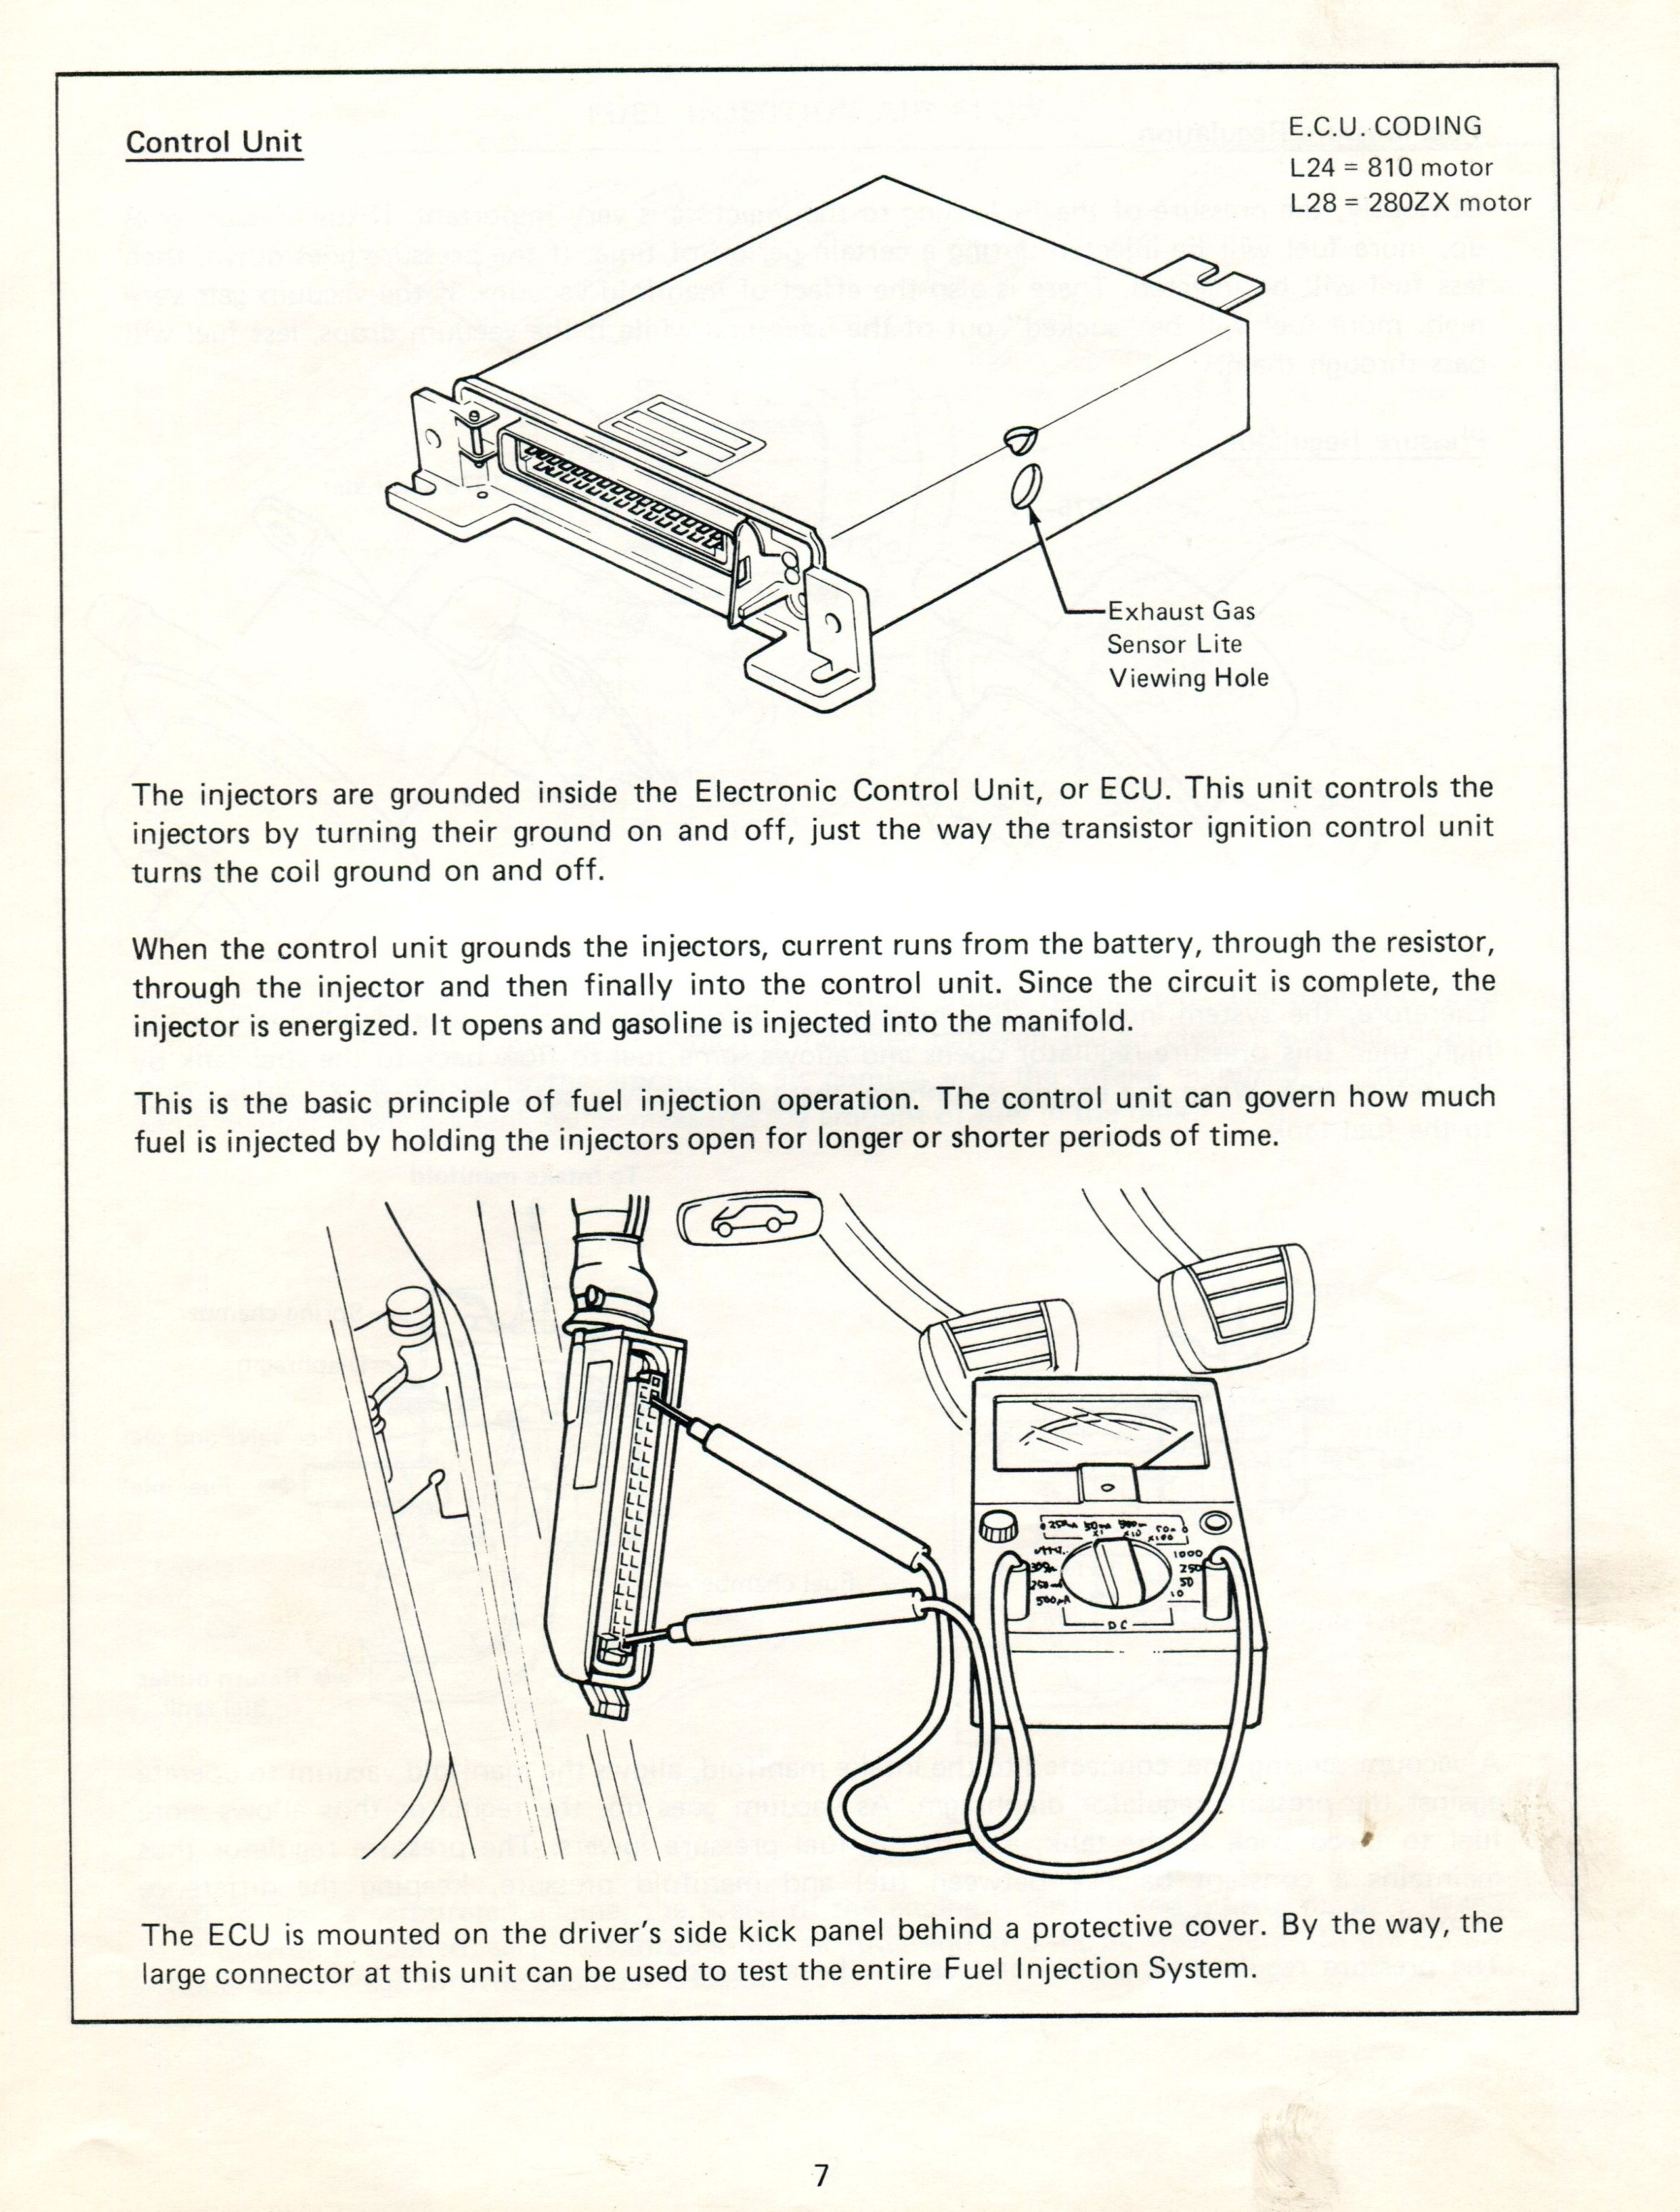 Datsun Fuel Injection on Bluebird Wiring Diagrams